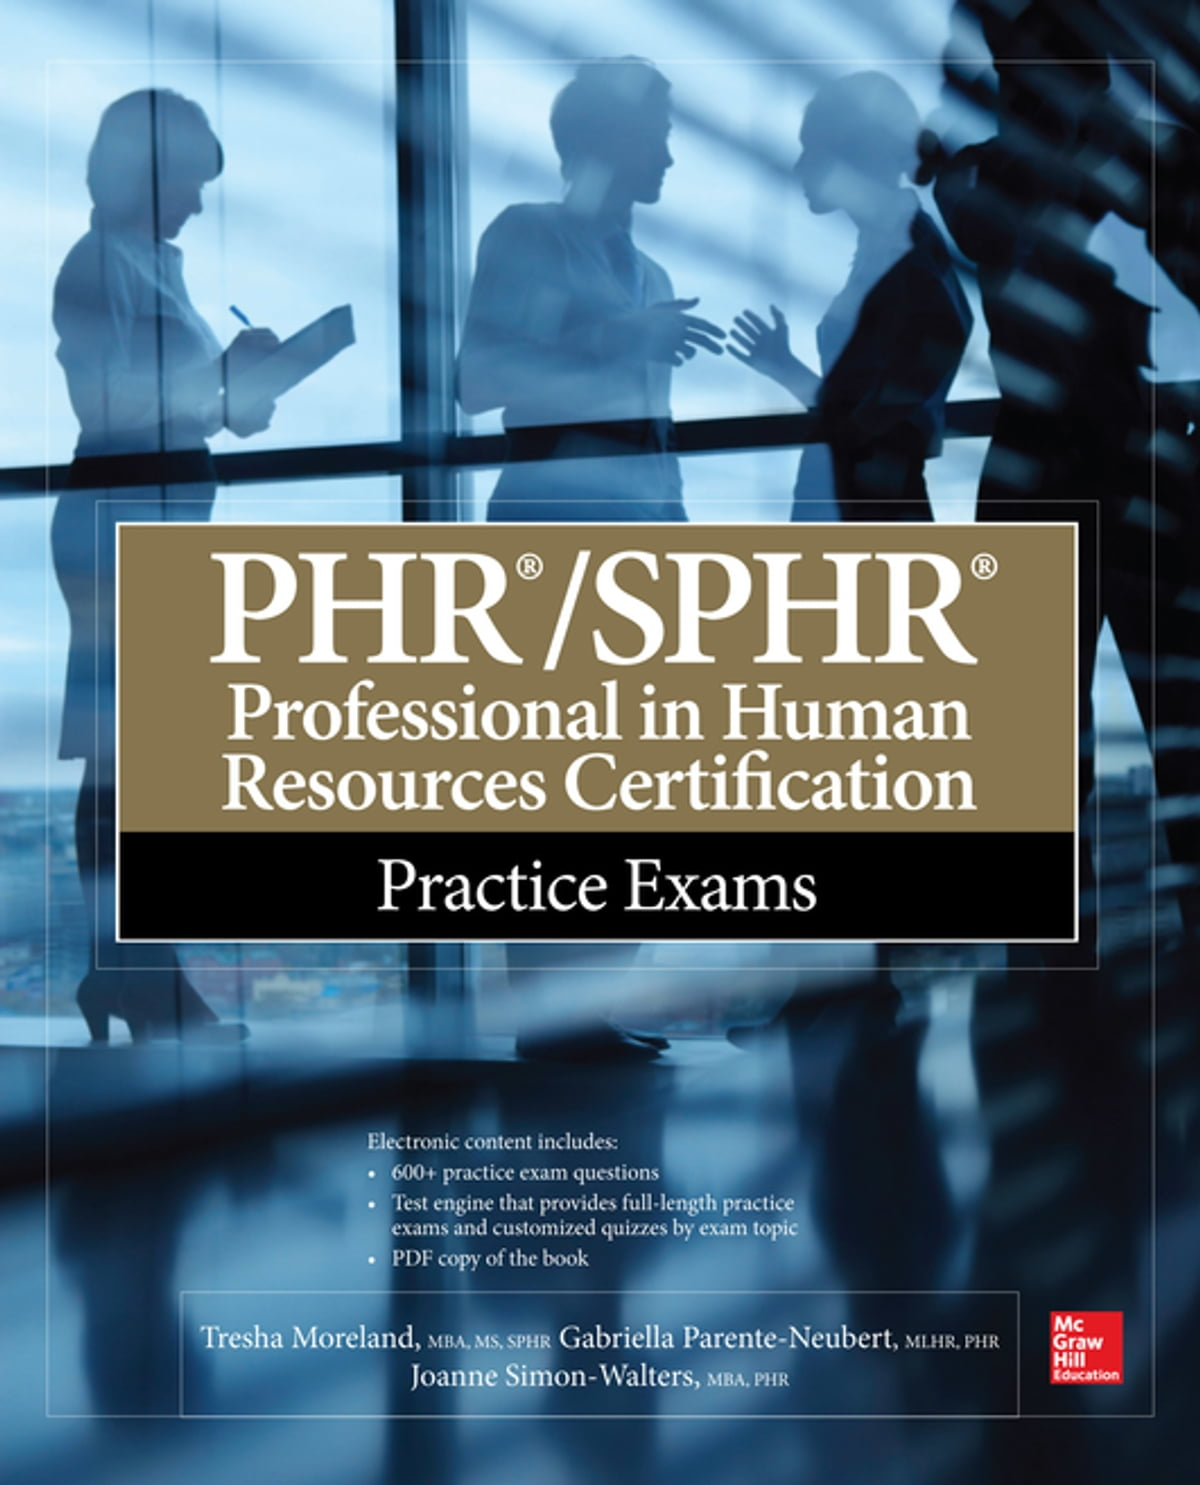 Phrsphr Professional In Human Resources Certification Practice